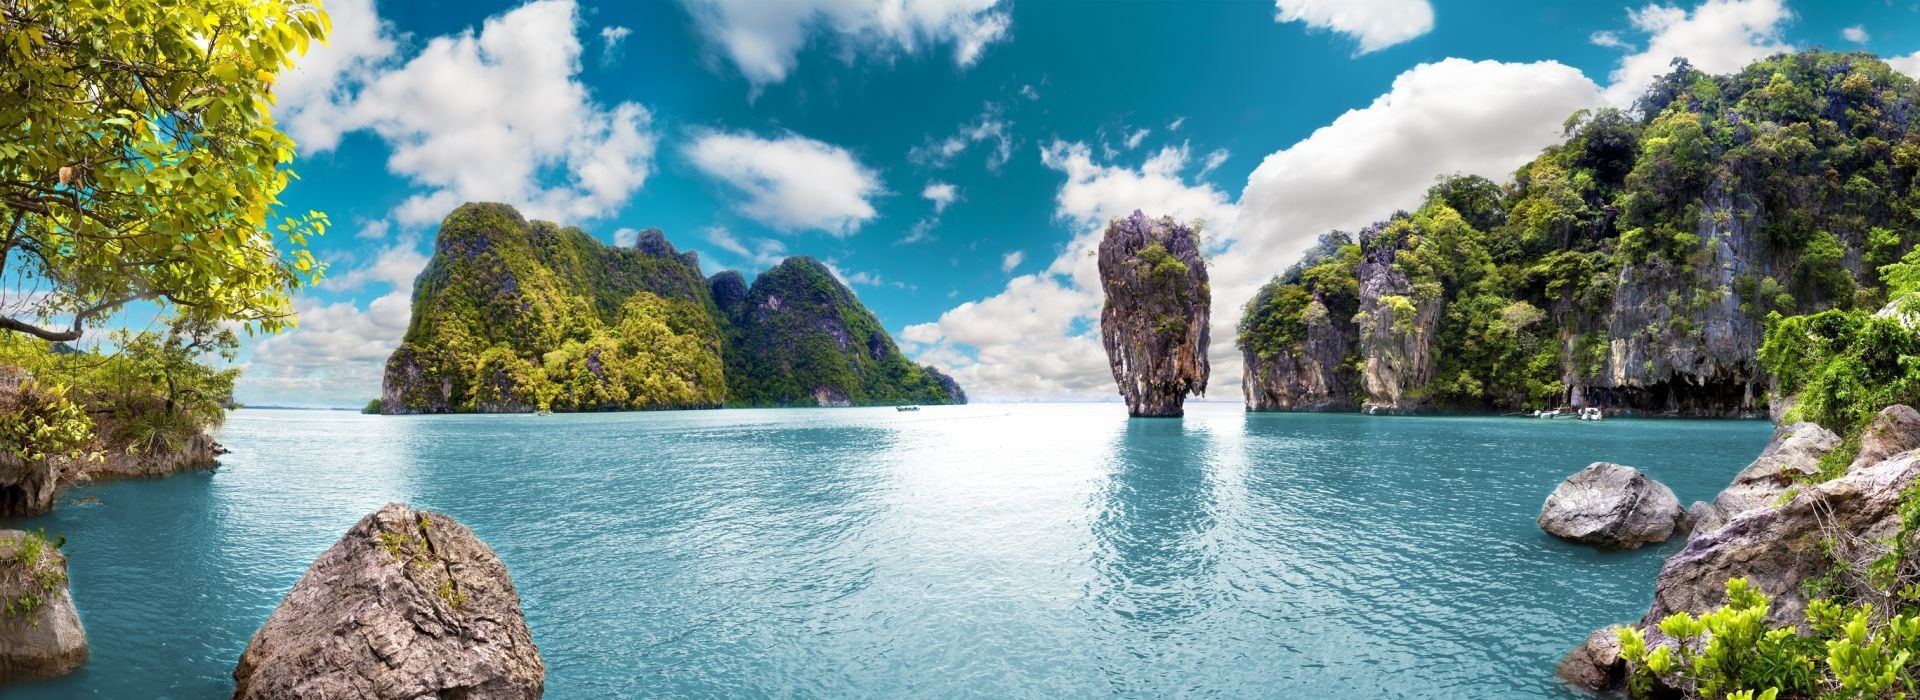 Wildlife, landscapes and nature Tours in Phuket